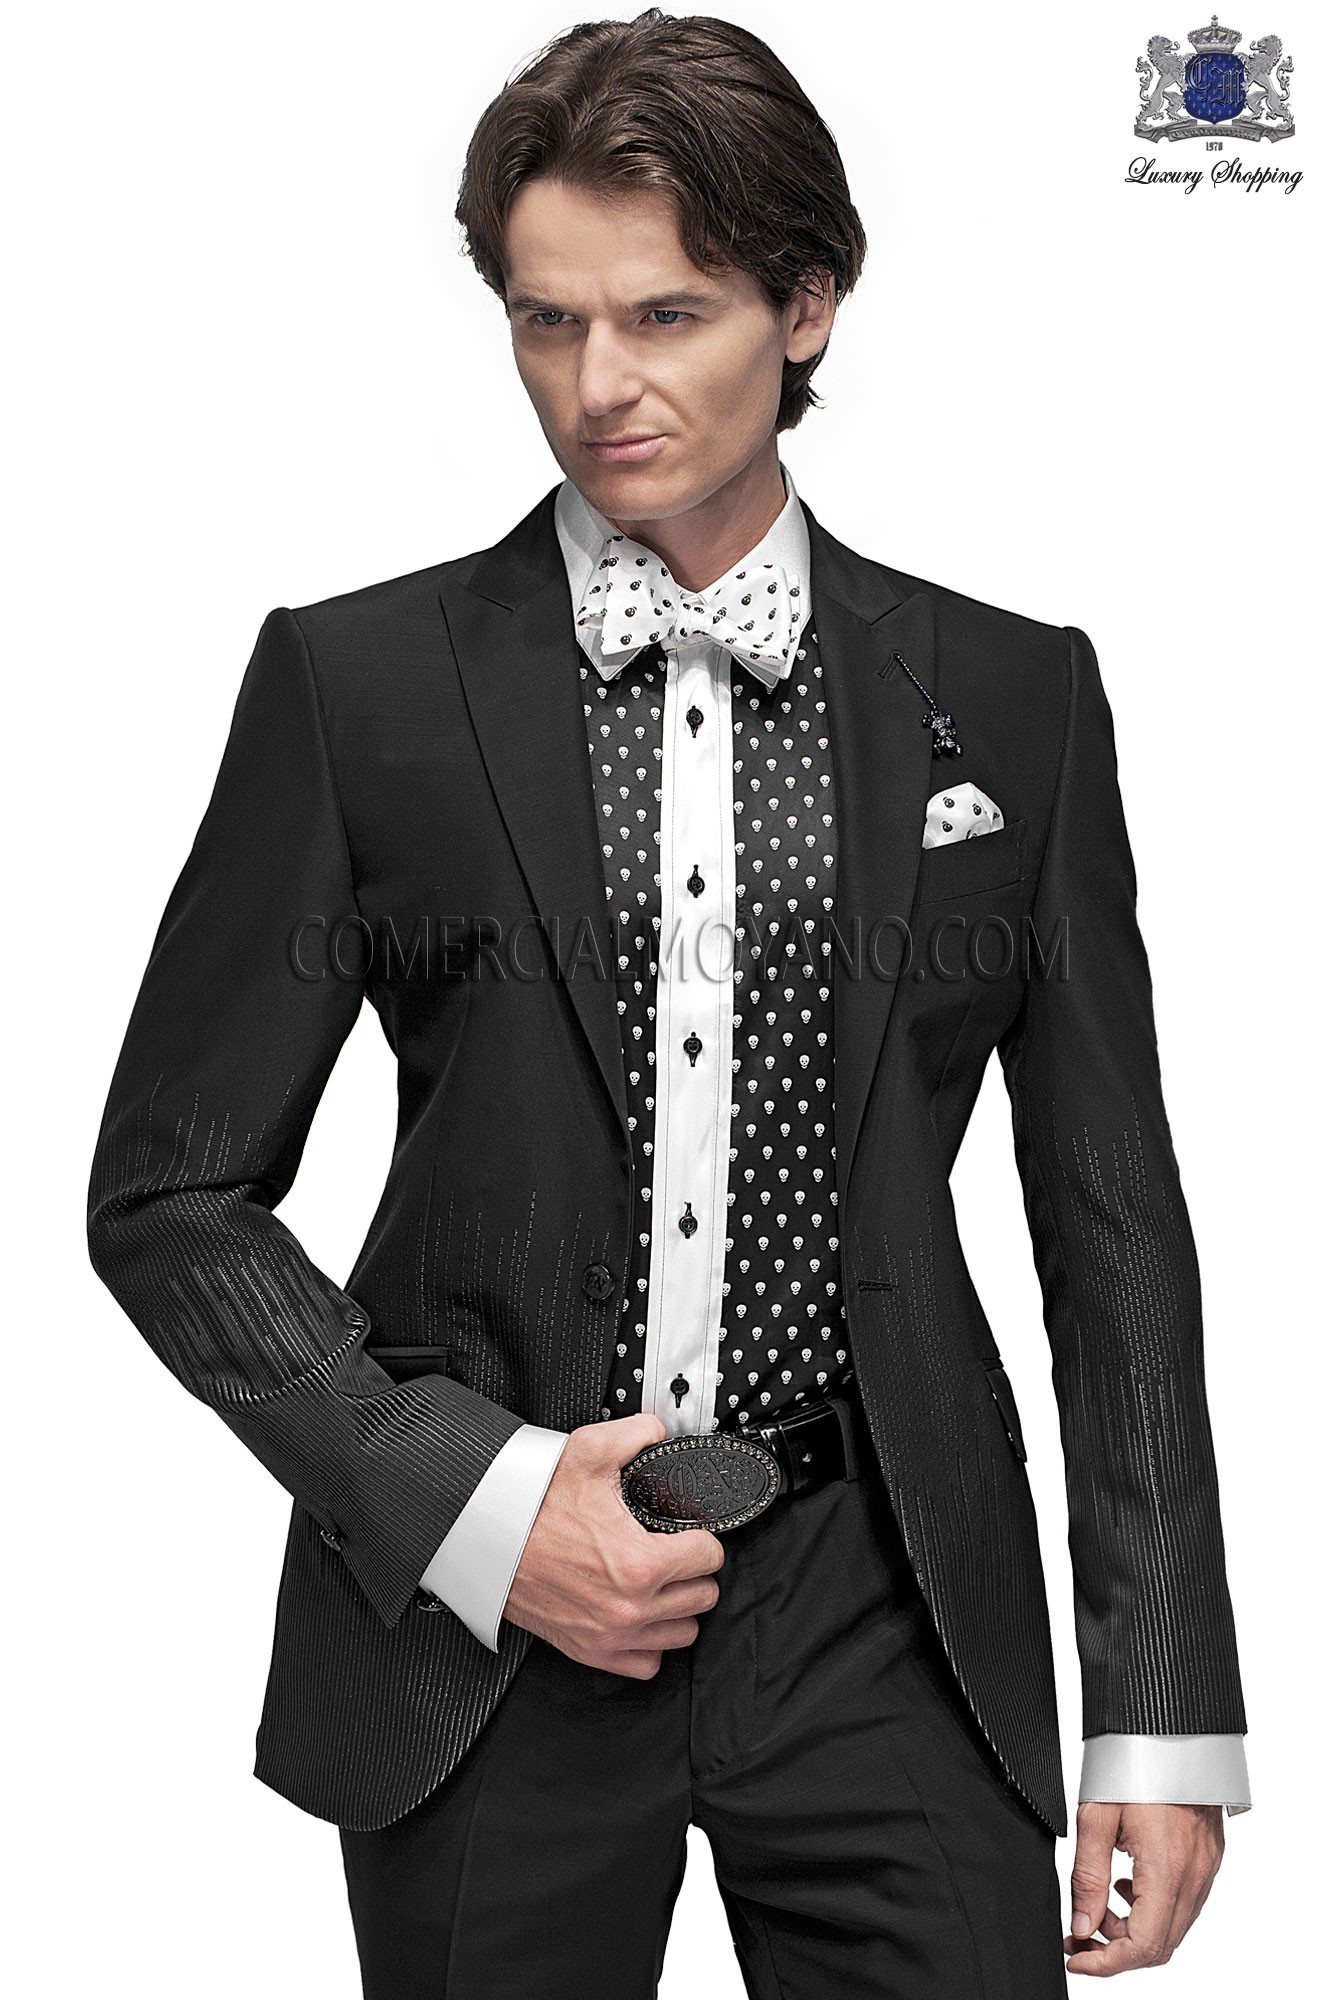 Emotion black men wedding suit model 60766 Ottavio Nuccio Gala